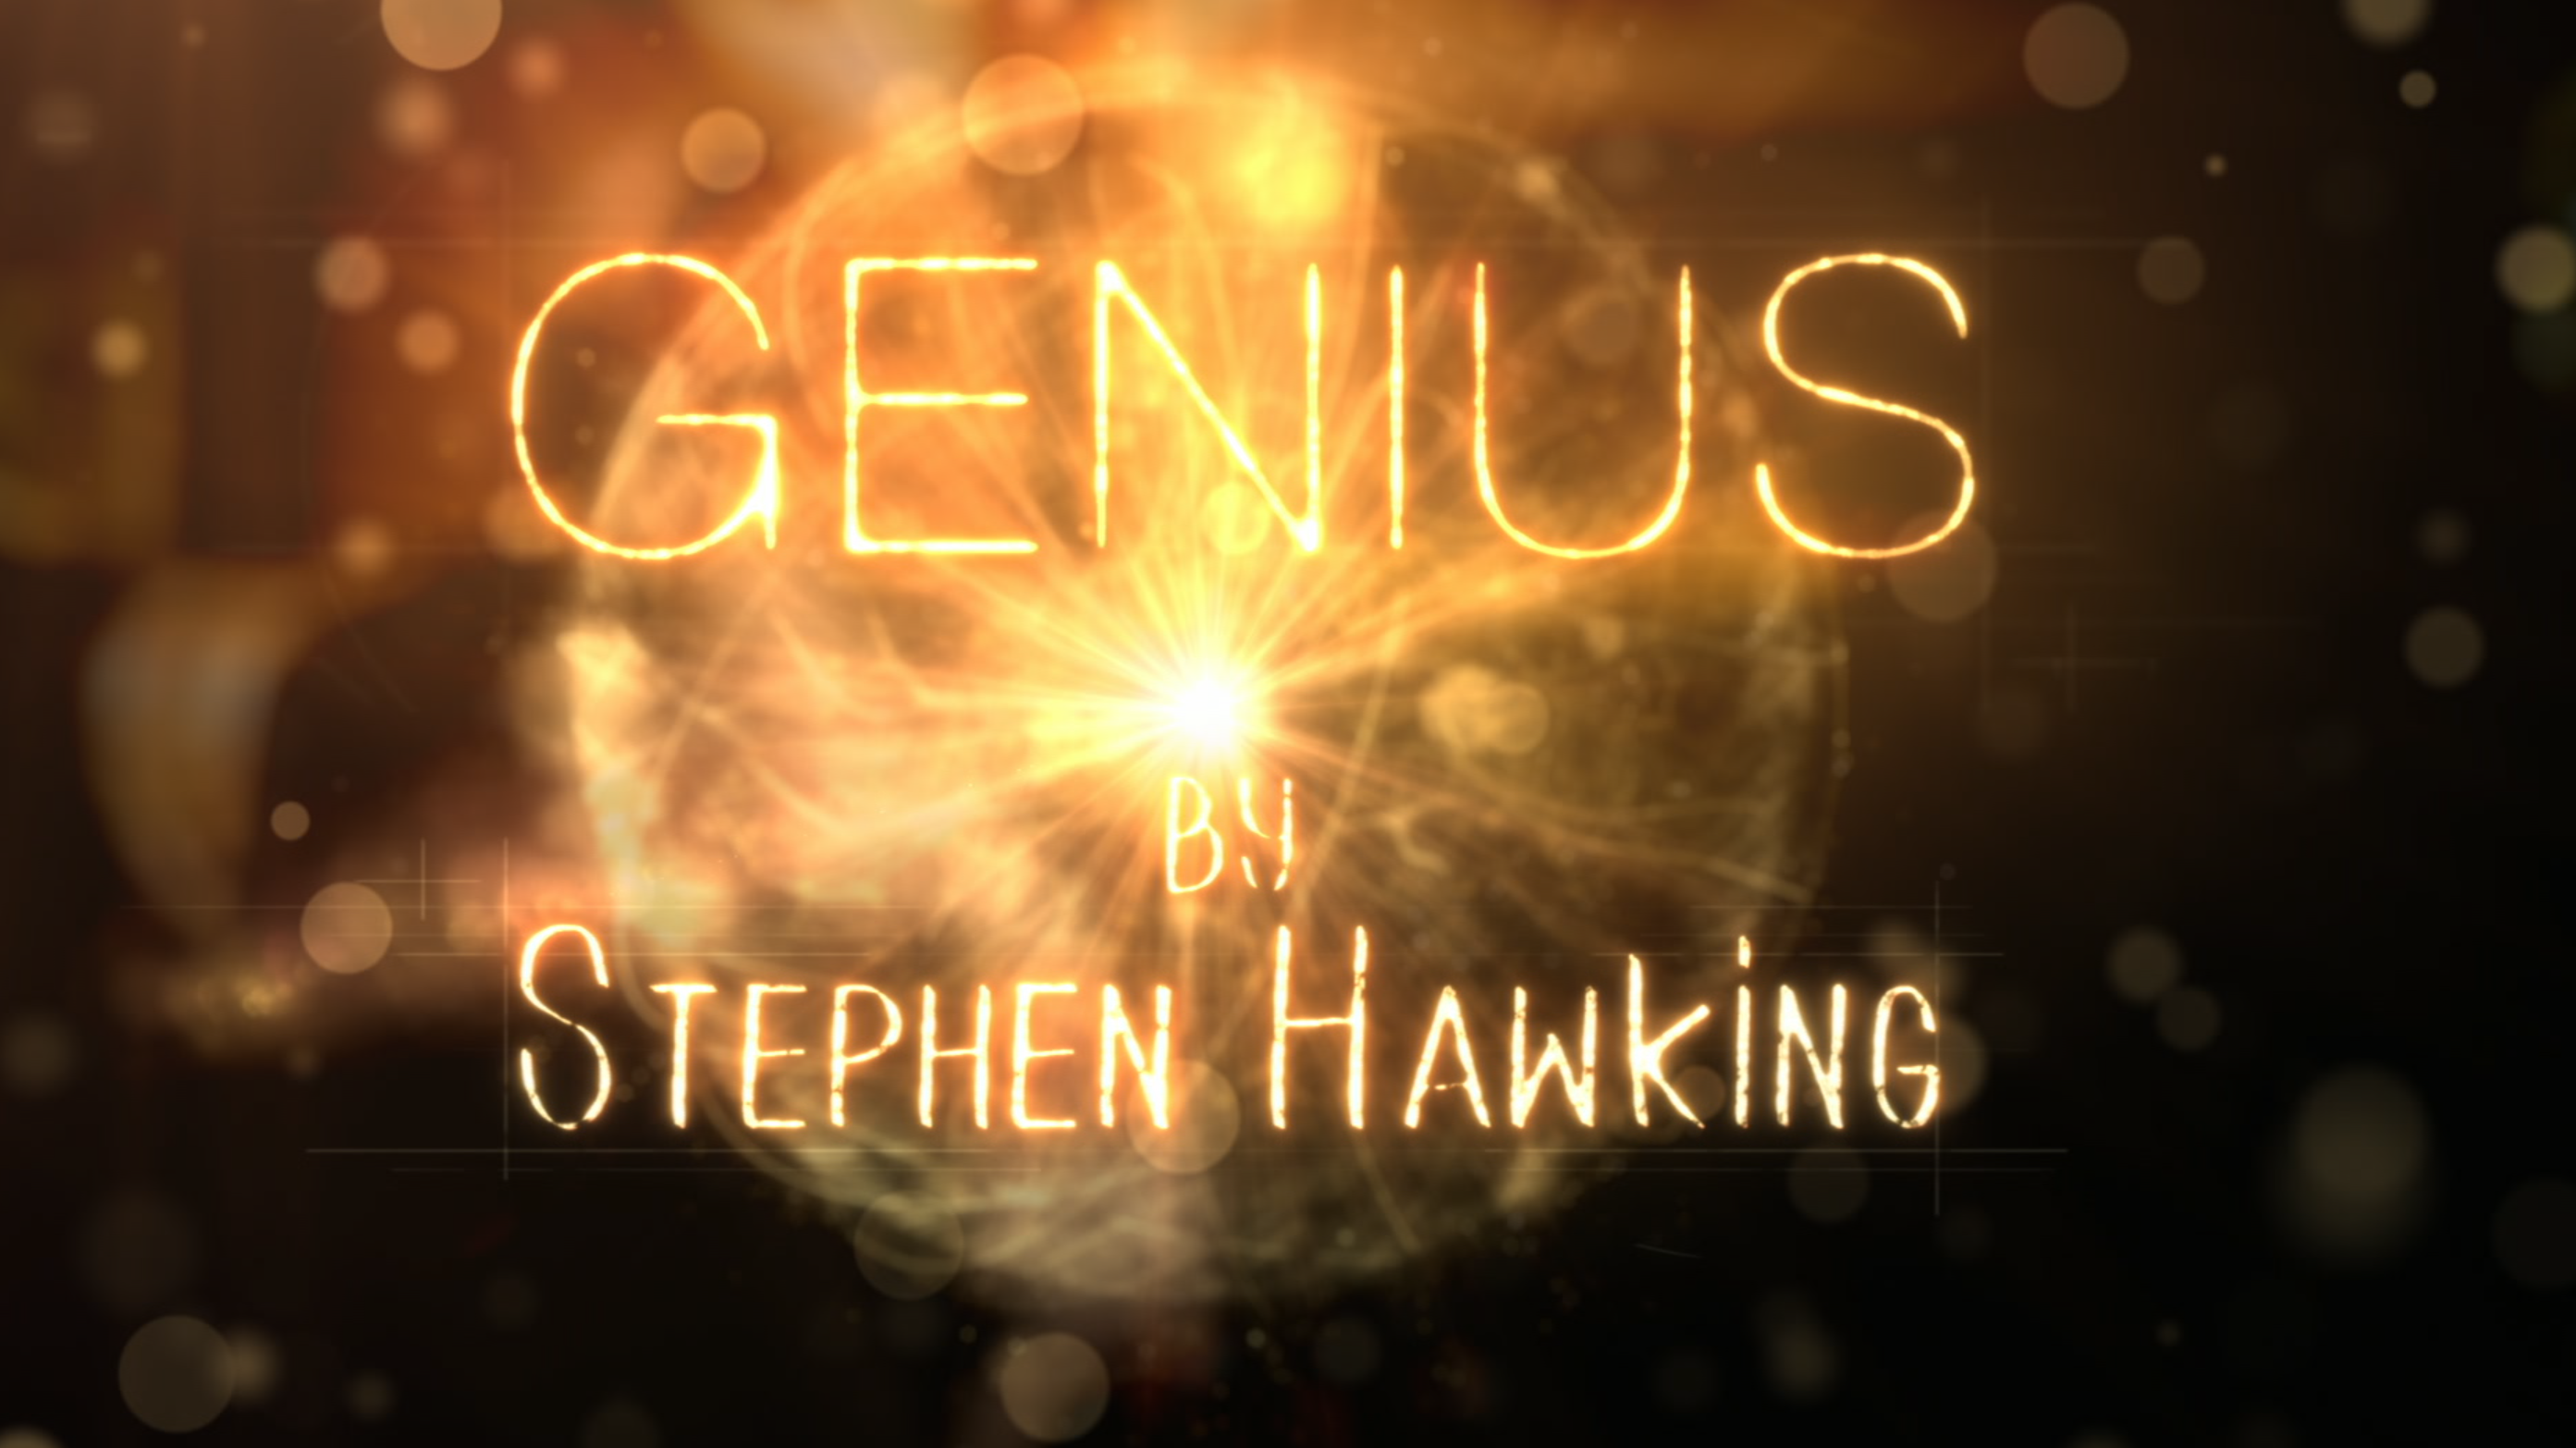 Descartes and Cartesian Coordinate System | Genius by Stephen Hawking